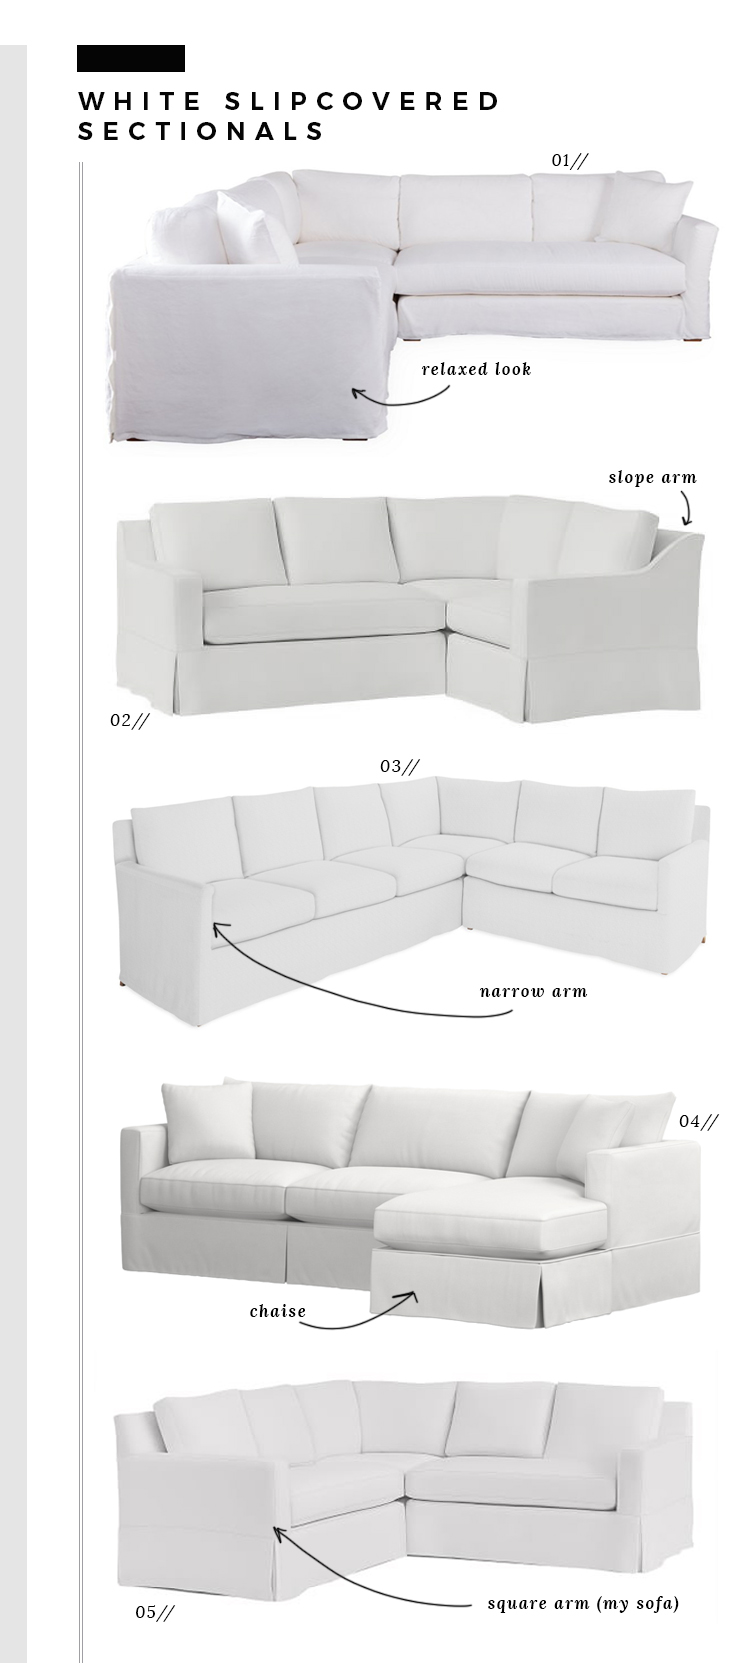 Marvelous How We Choose White Slipcovered Sofas Room For Tuesday Blog Download Free Architecture Designs Scobabritishbridgeorg